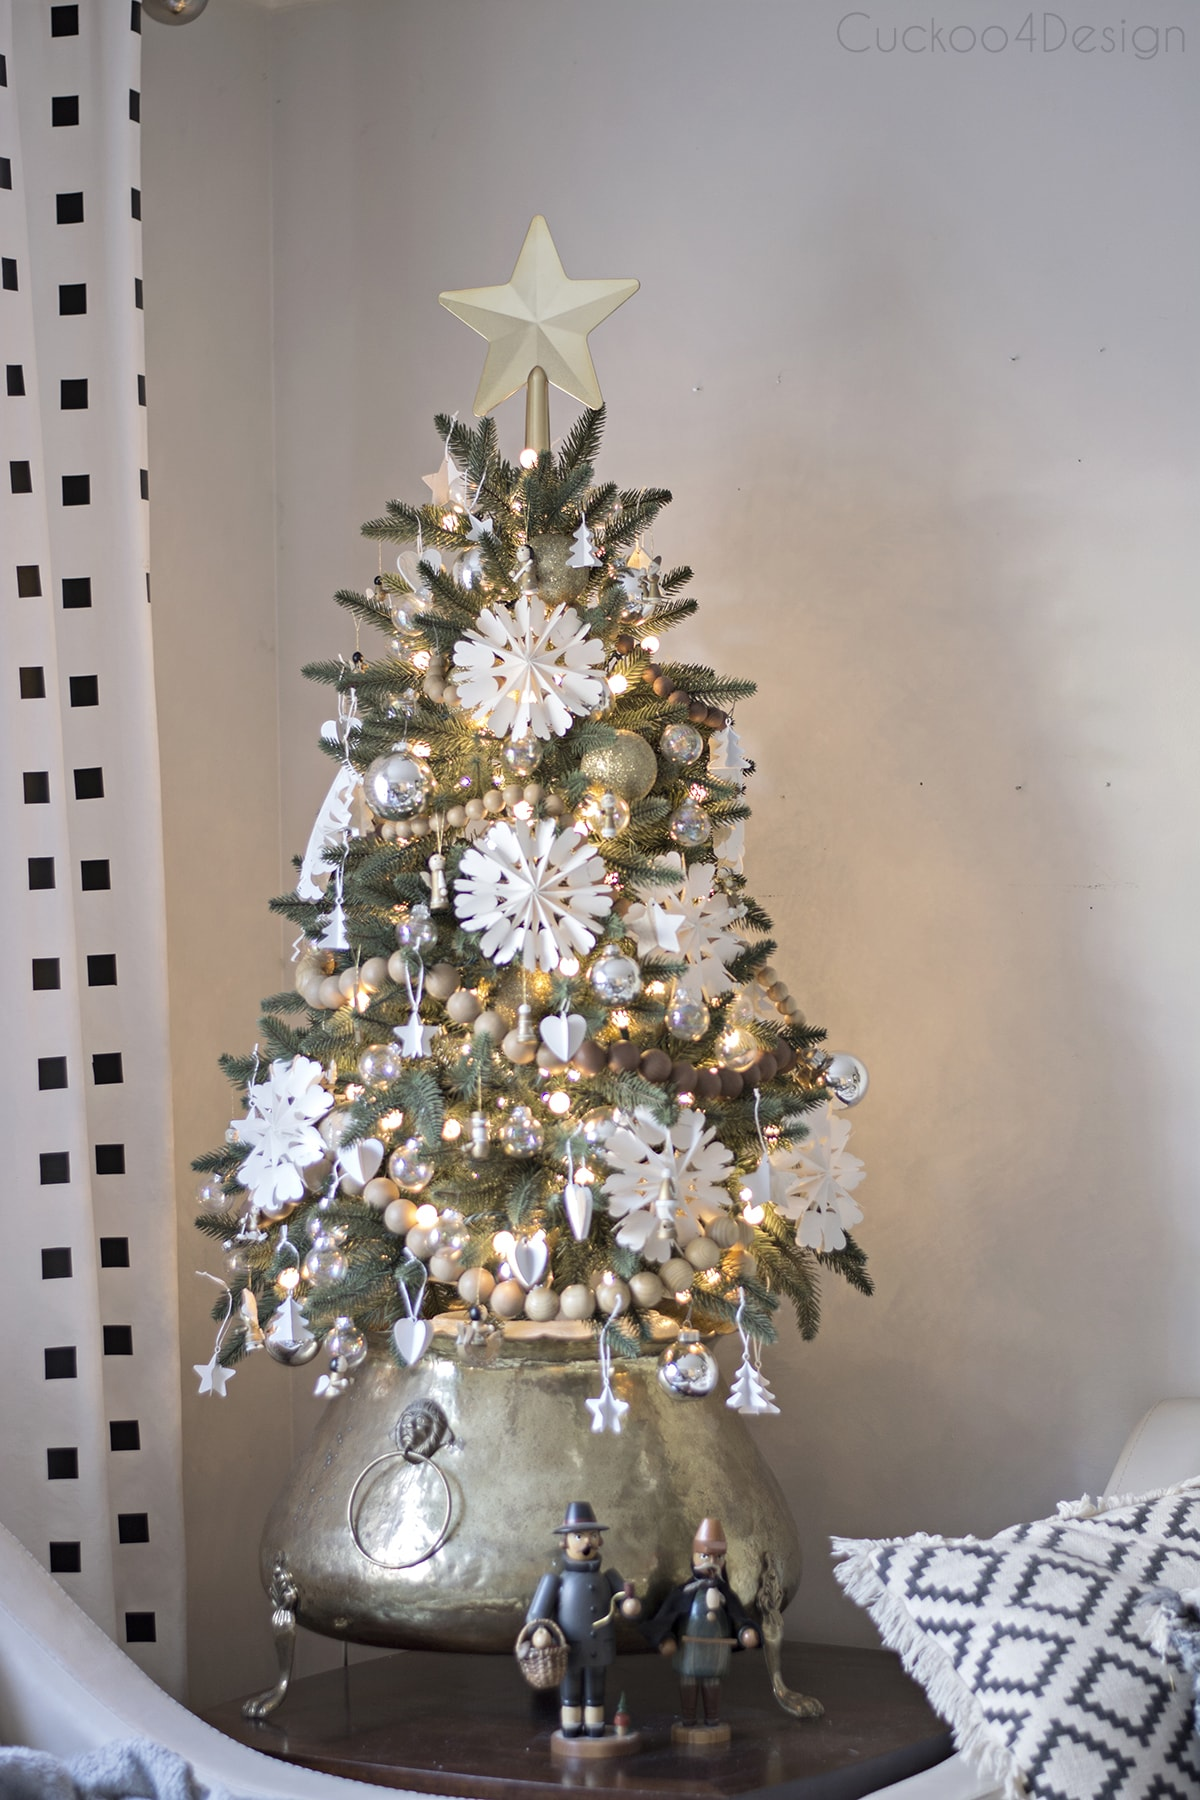 faux Christmas tree with white snowflakes and woodbeadgarland